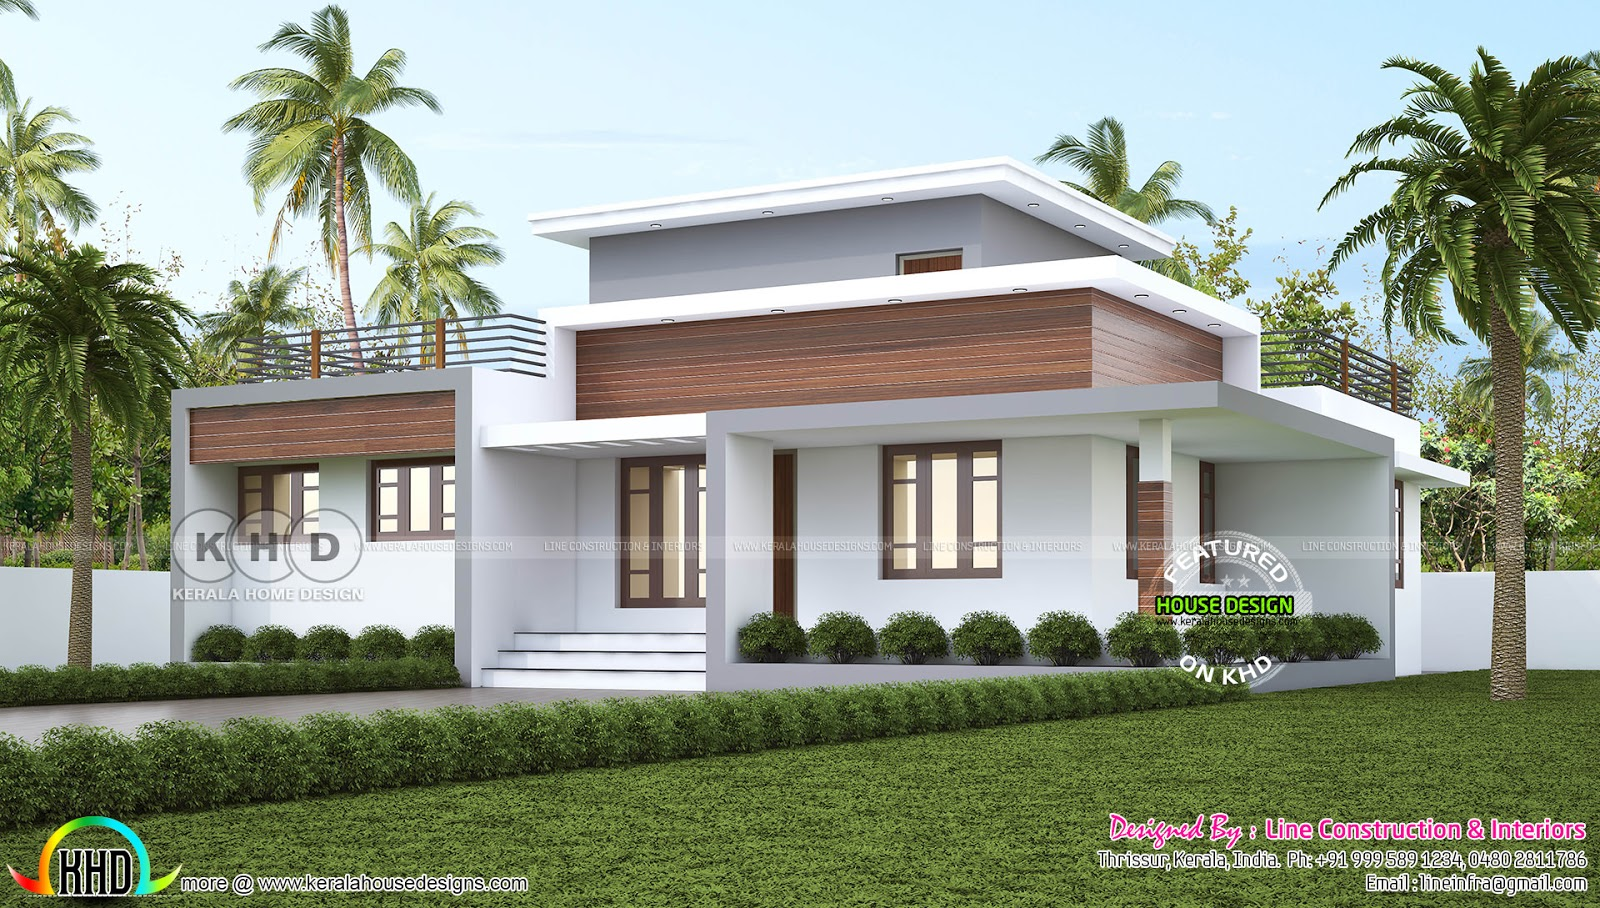 1300 Square Feet 3 Bedroom Flat Roof House Plan Single Floor Kerala Home Design Bloglovin